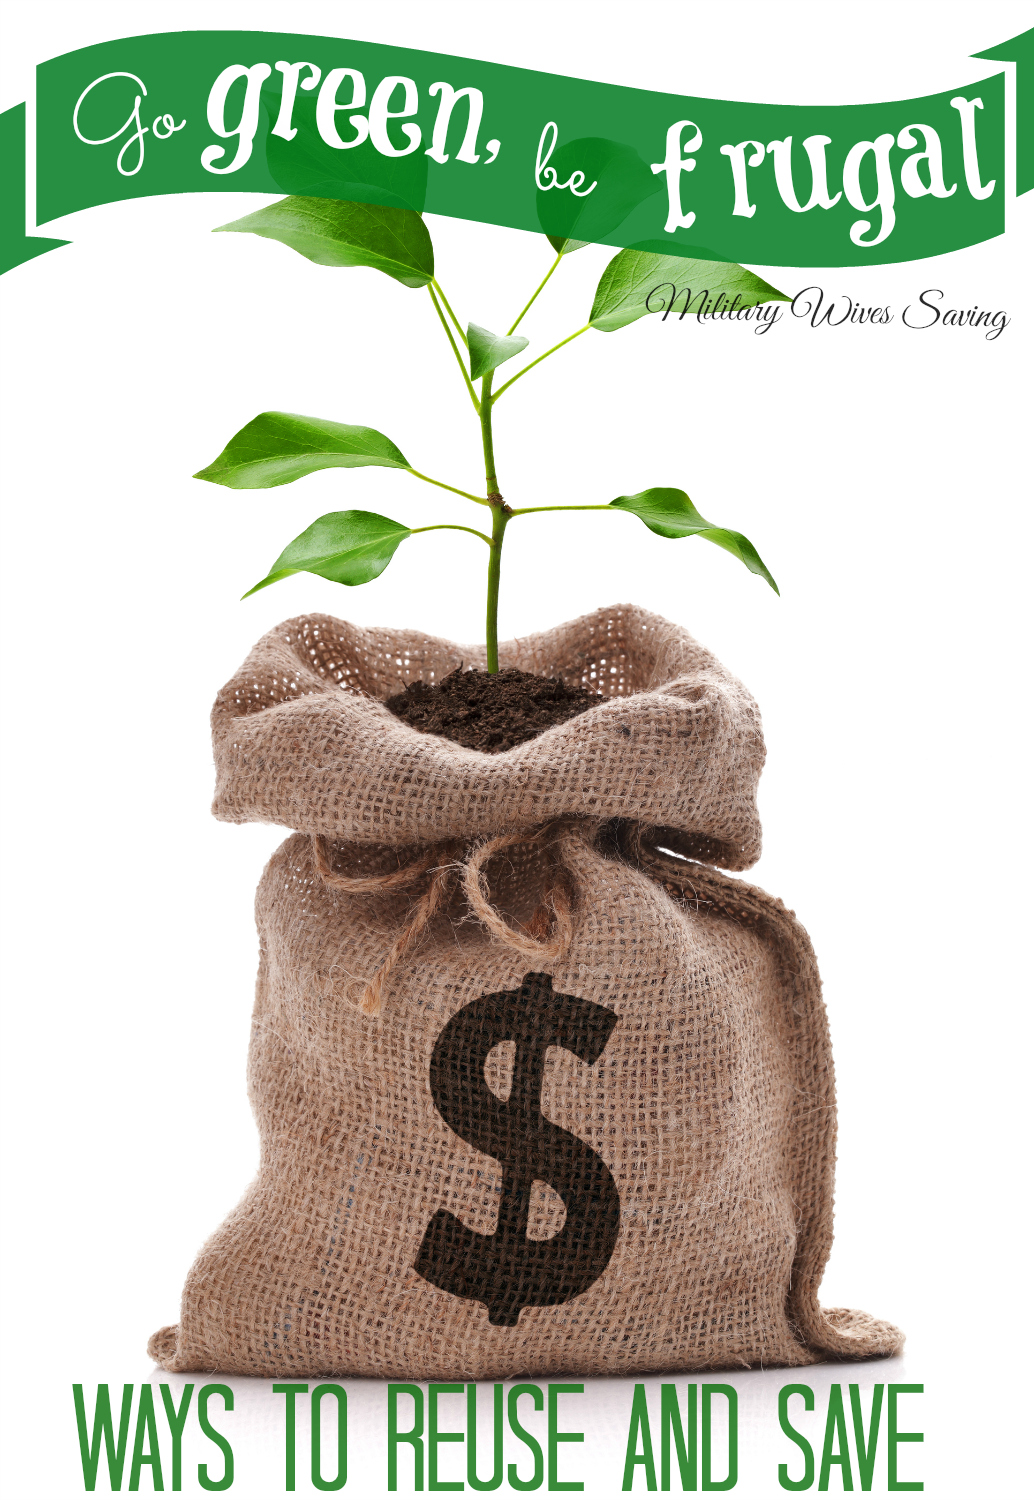 Go green be frugal - ways to reuse and save